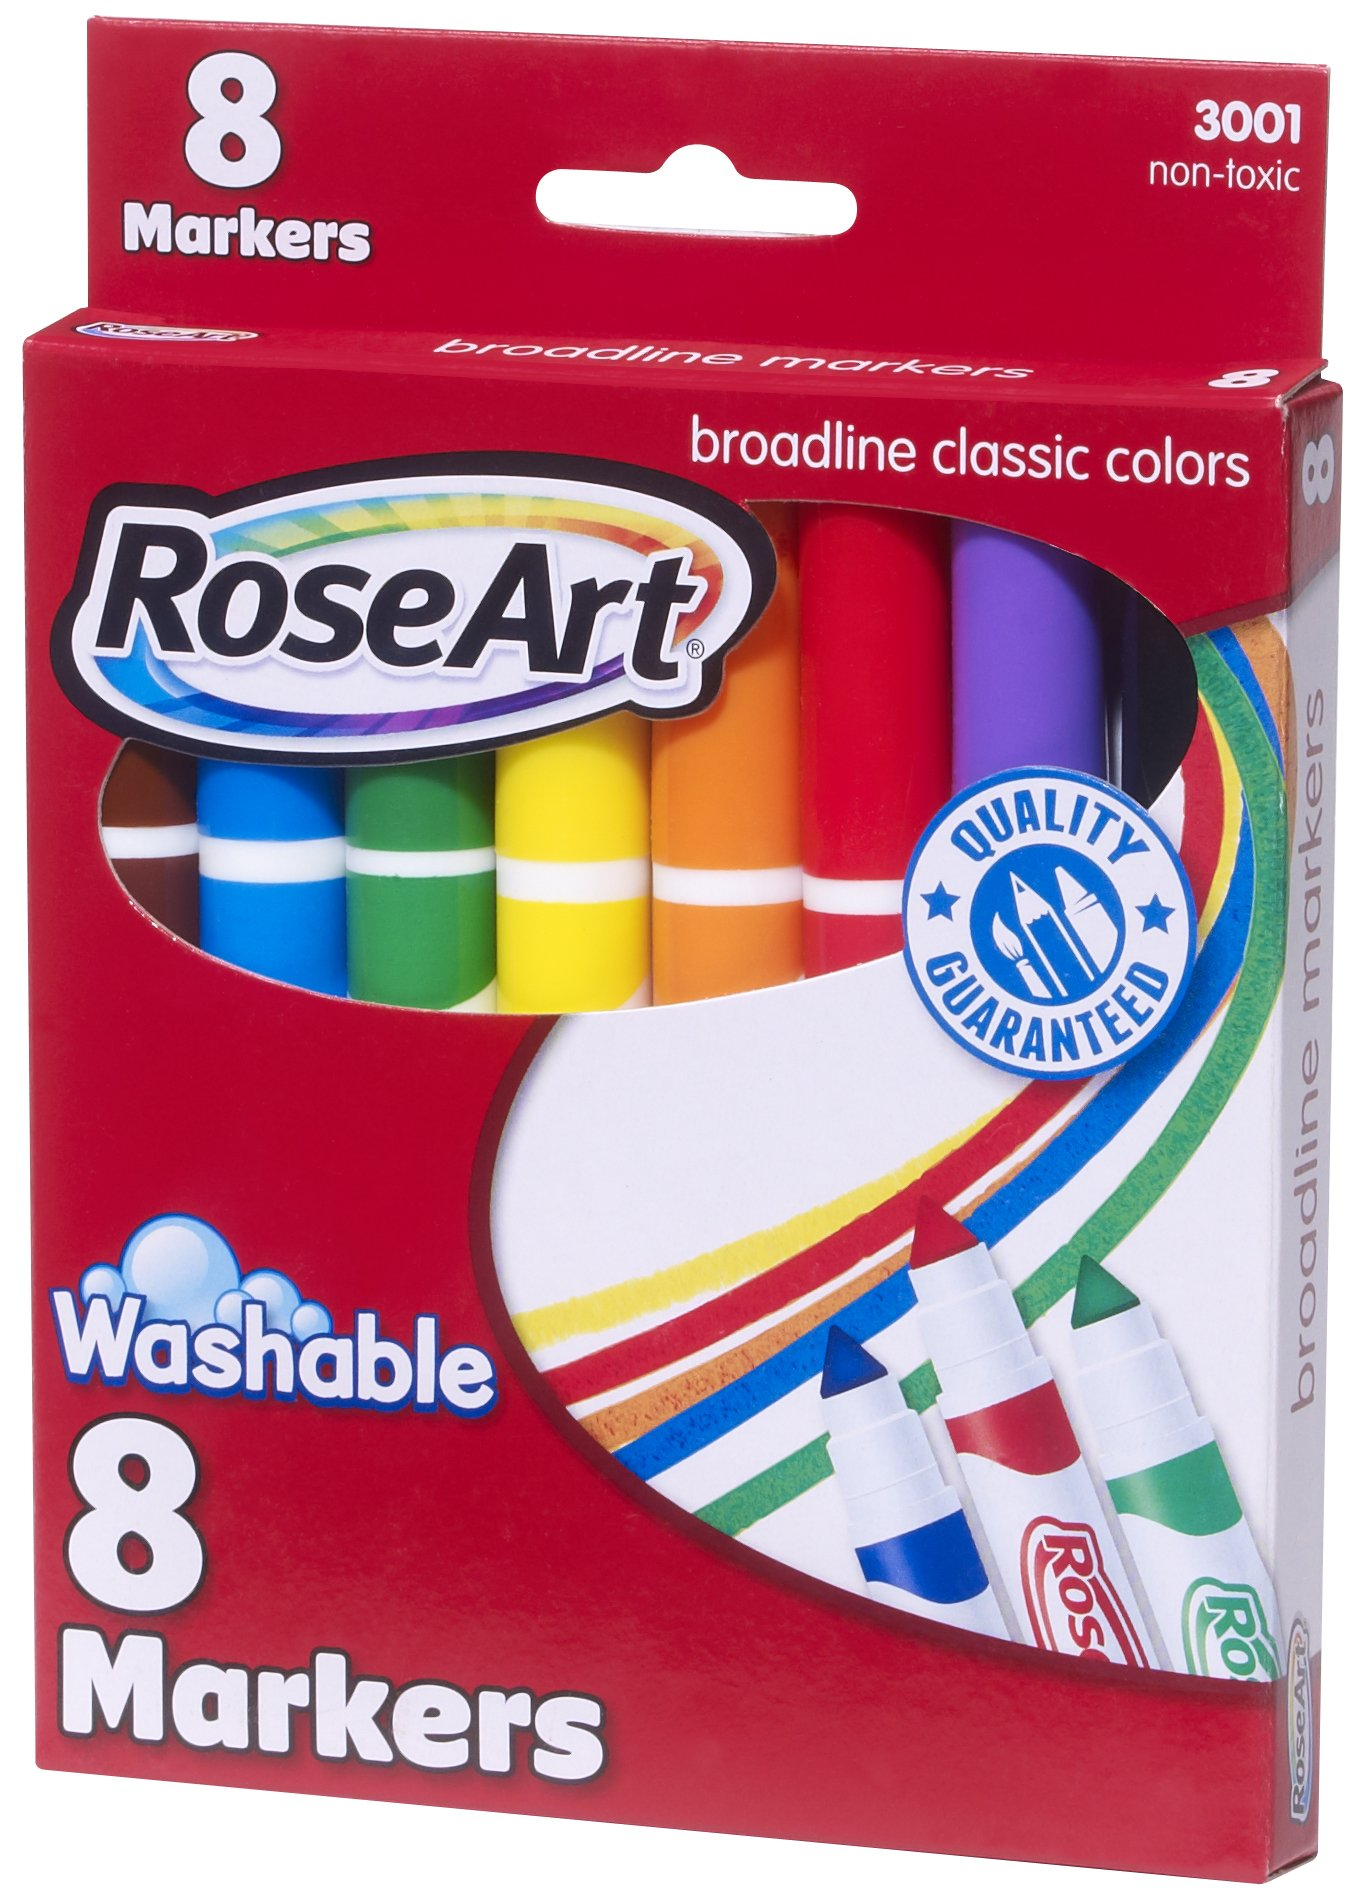 RoseArt 8-Color Classic Washable Broadline Markers, Pack of 6 (3001)